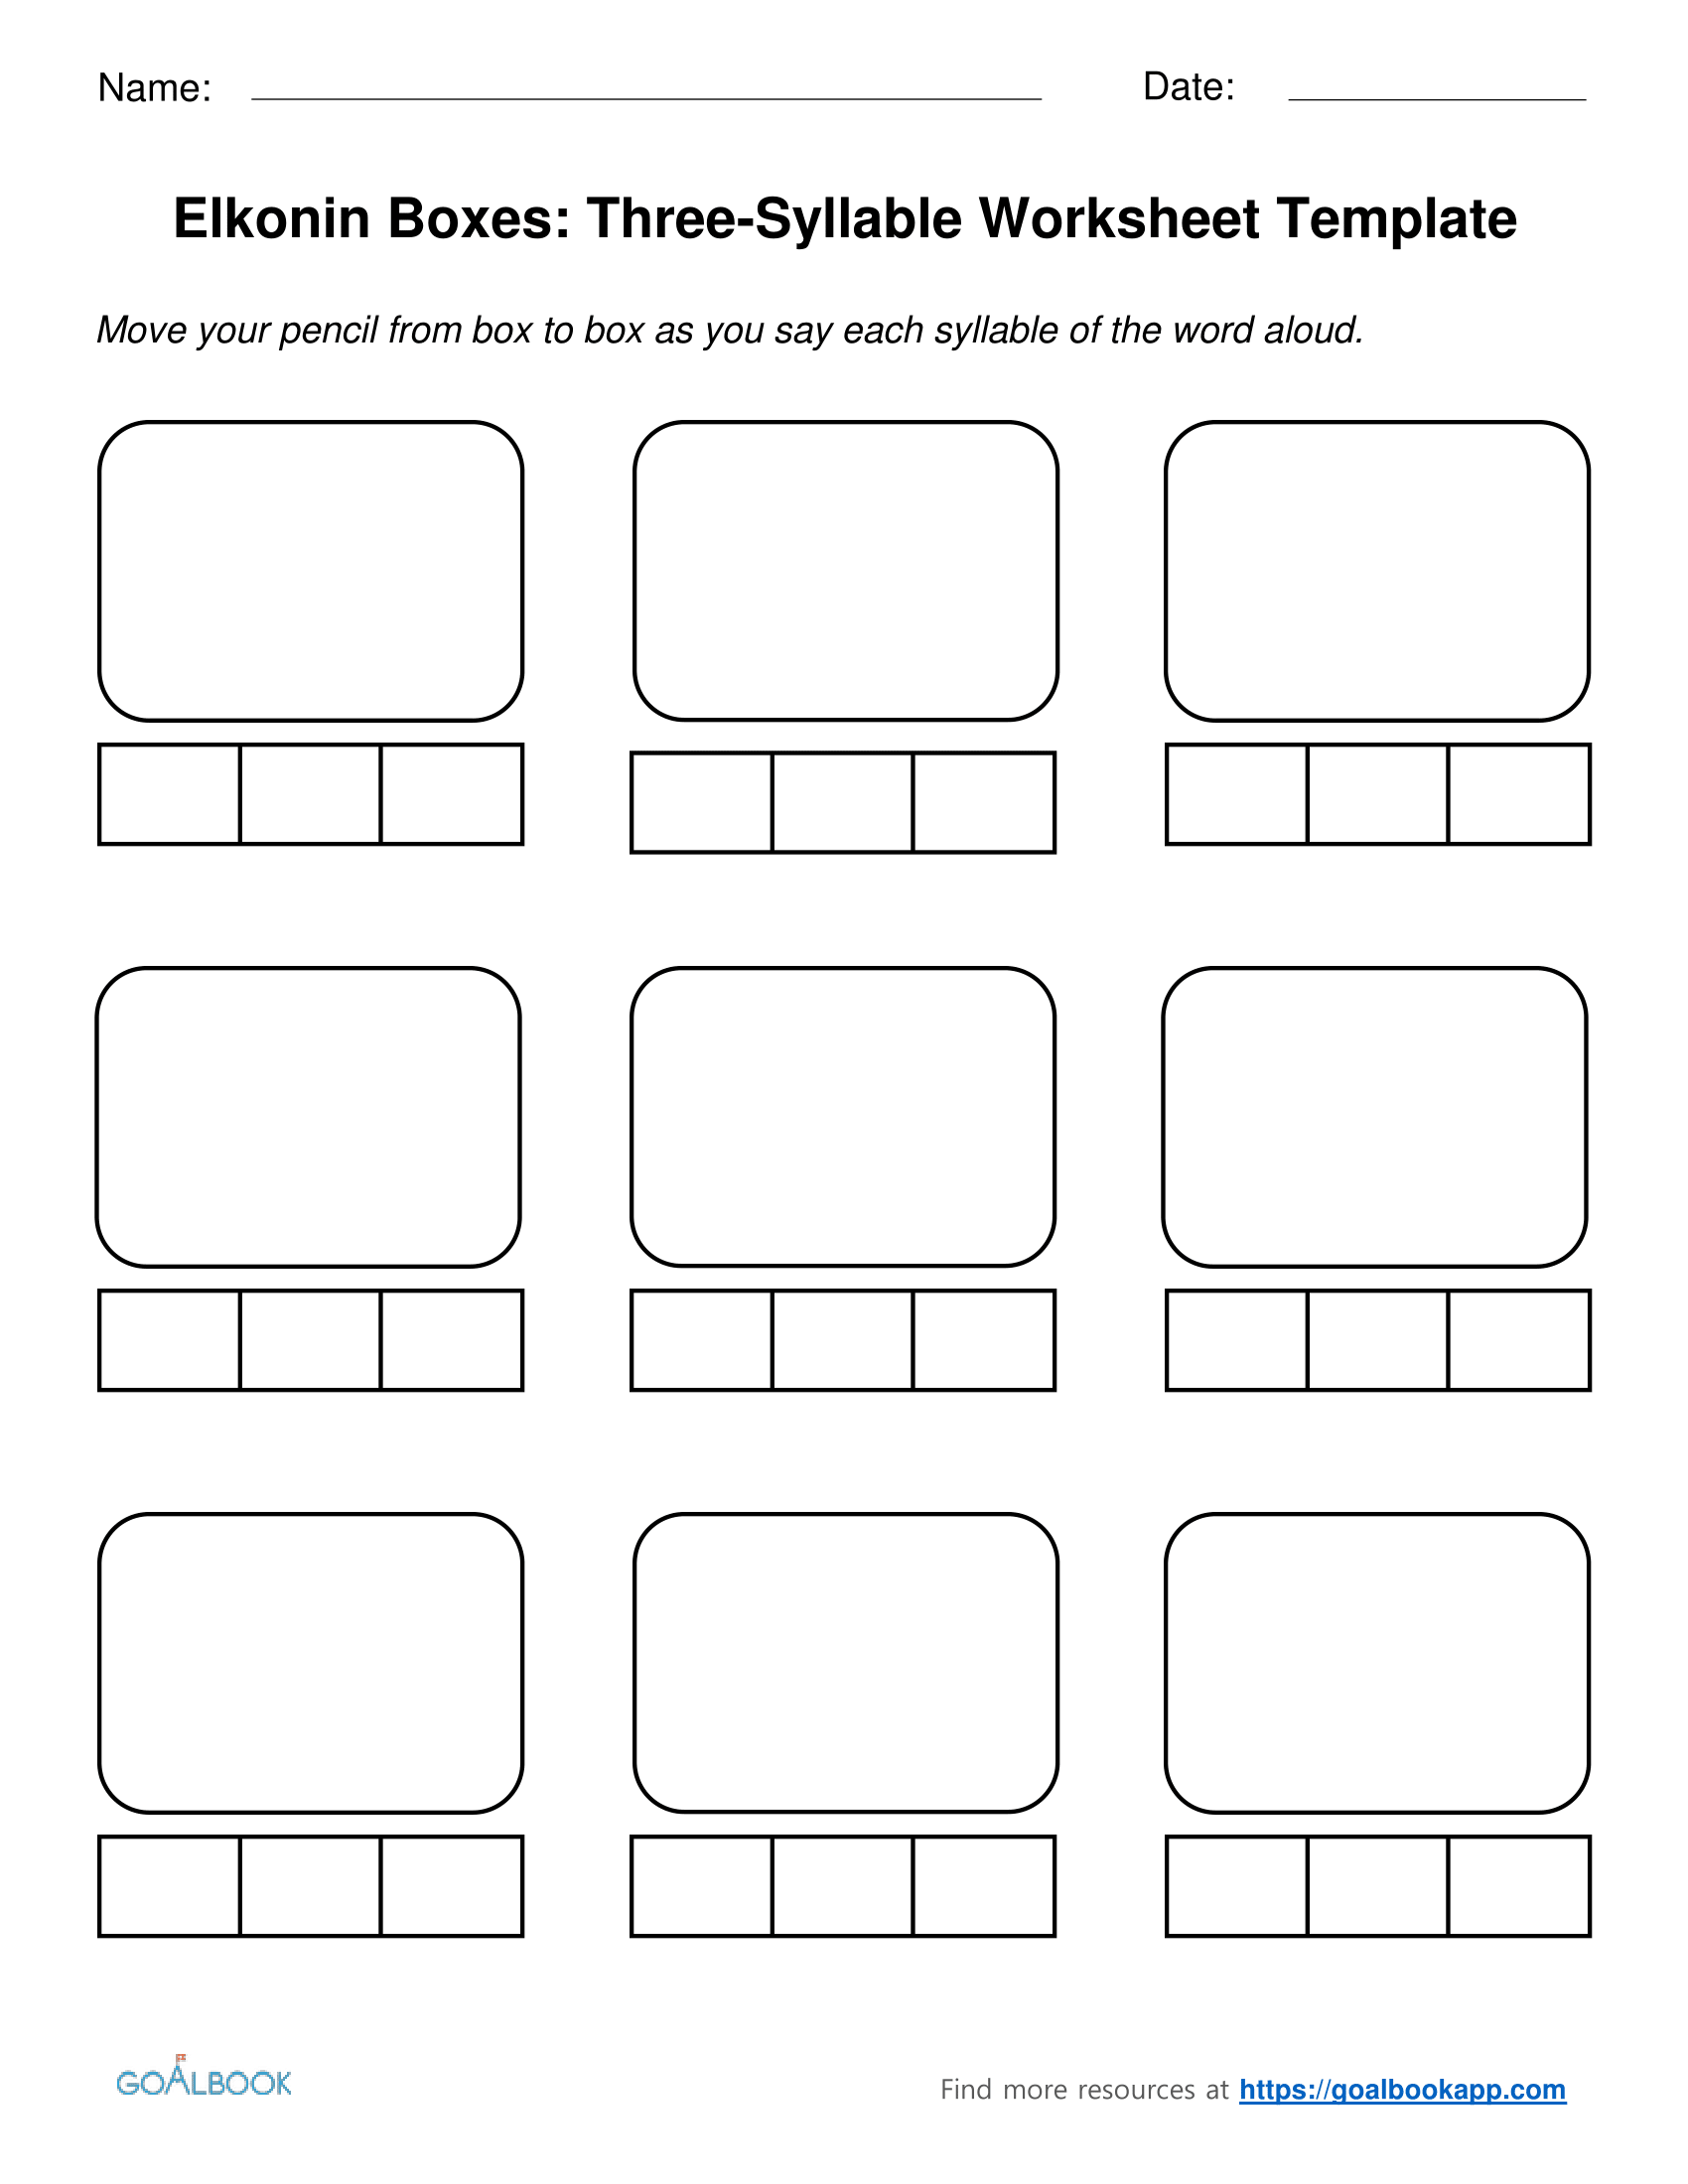 worksheet Word Segmentation Worksheets three syllable elkonin boxes and worksheets goalbook pathways enlarge